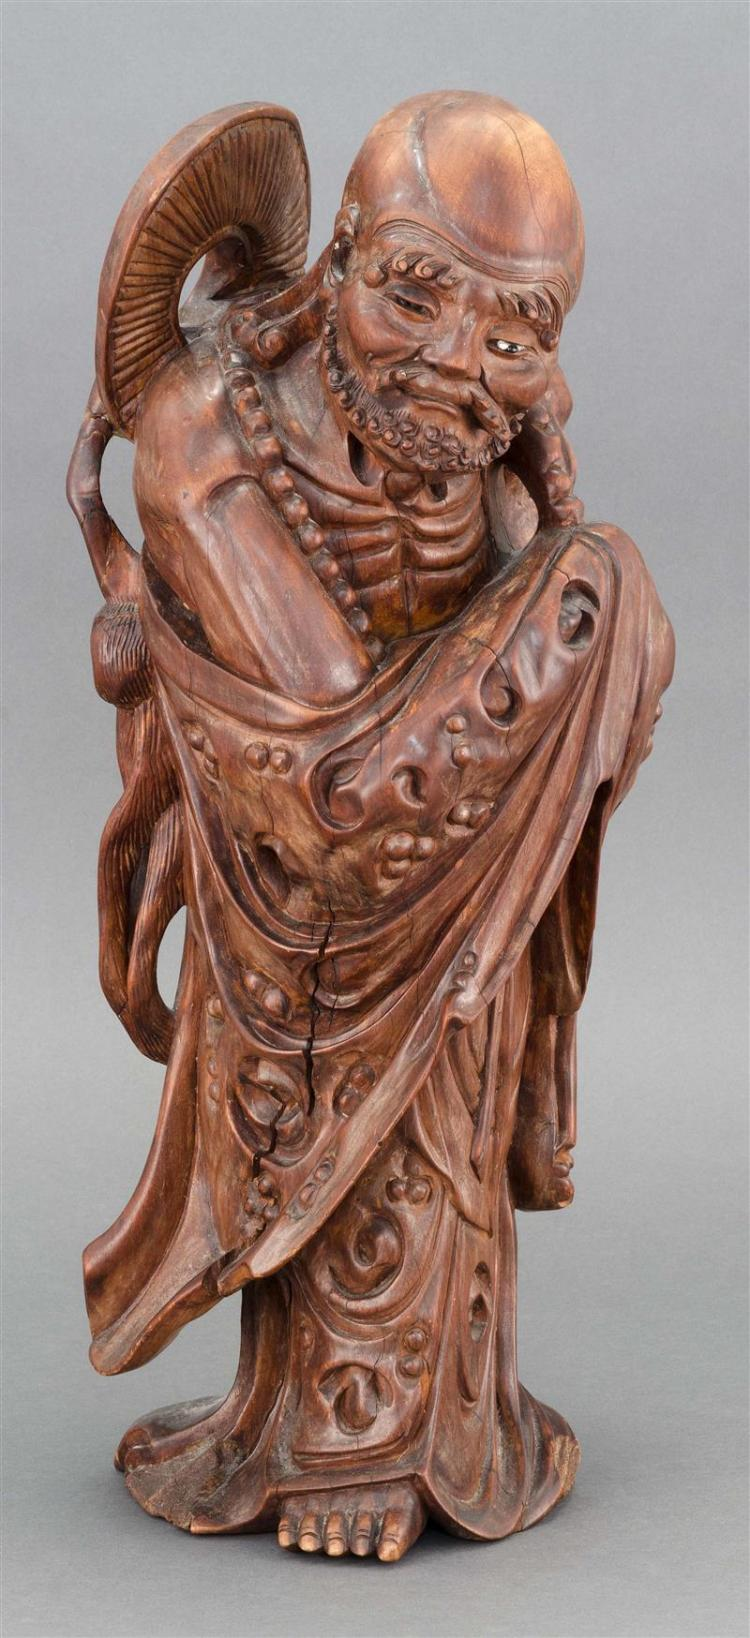 CARVED WOOD FIGURE OF AN IMMORTAL In standing position carrying his hat on his back. Glass eyes. Height 19.25